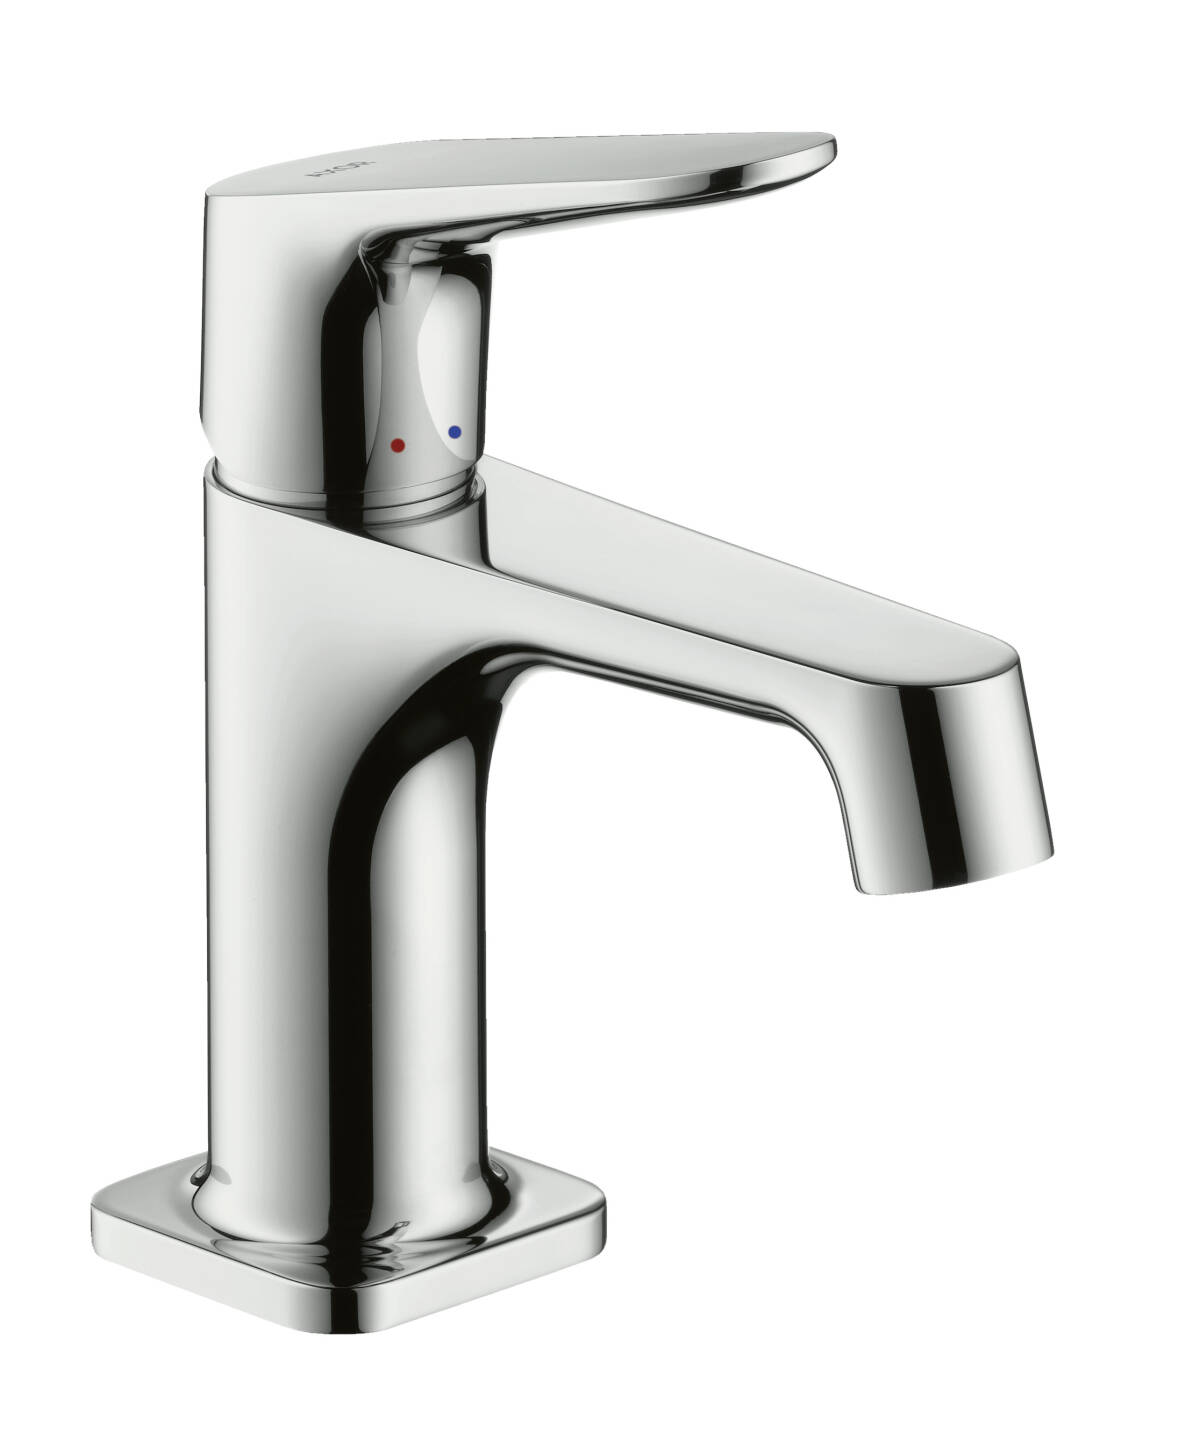 Single lever basin mixer 70 for hand washbasins with pop-up waste set, Chrome, 34016000